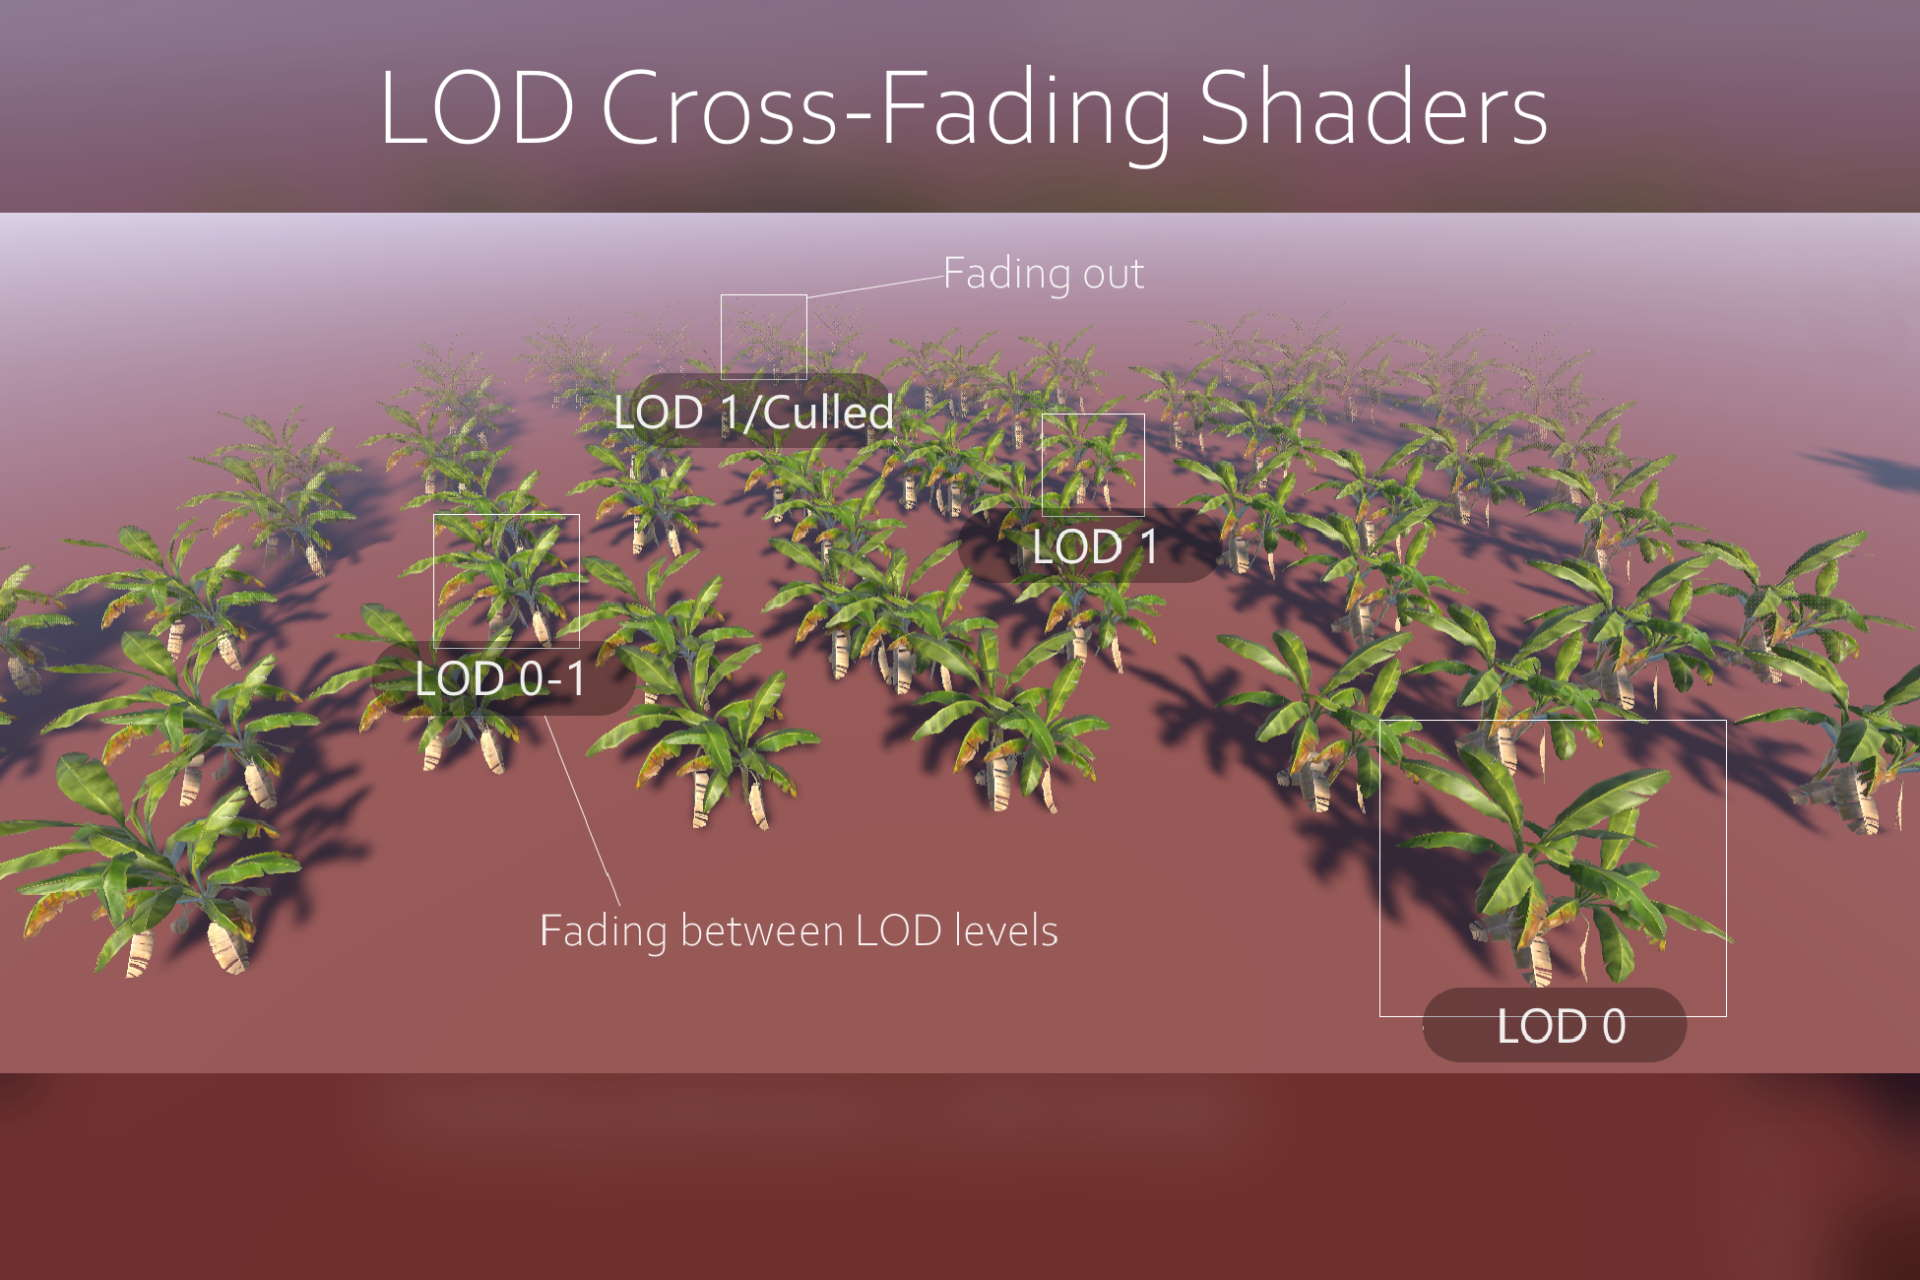 Lod crossfading shaders intro image